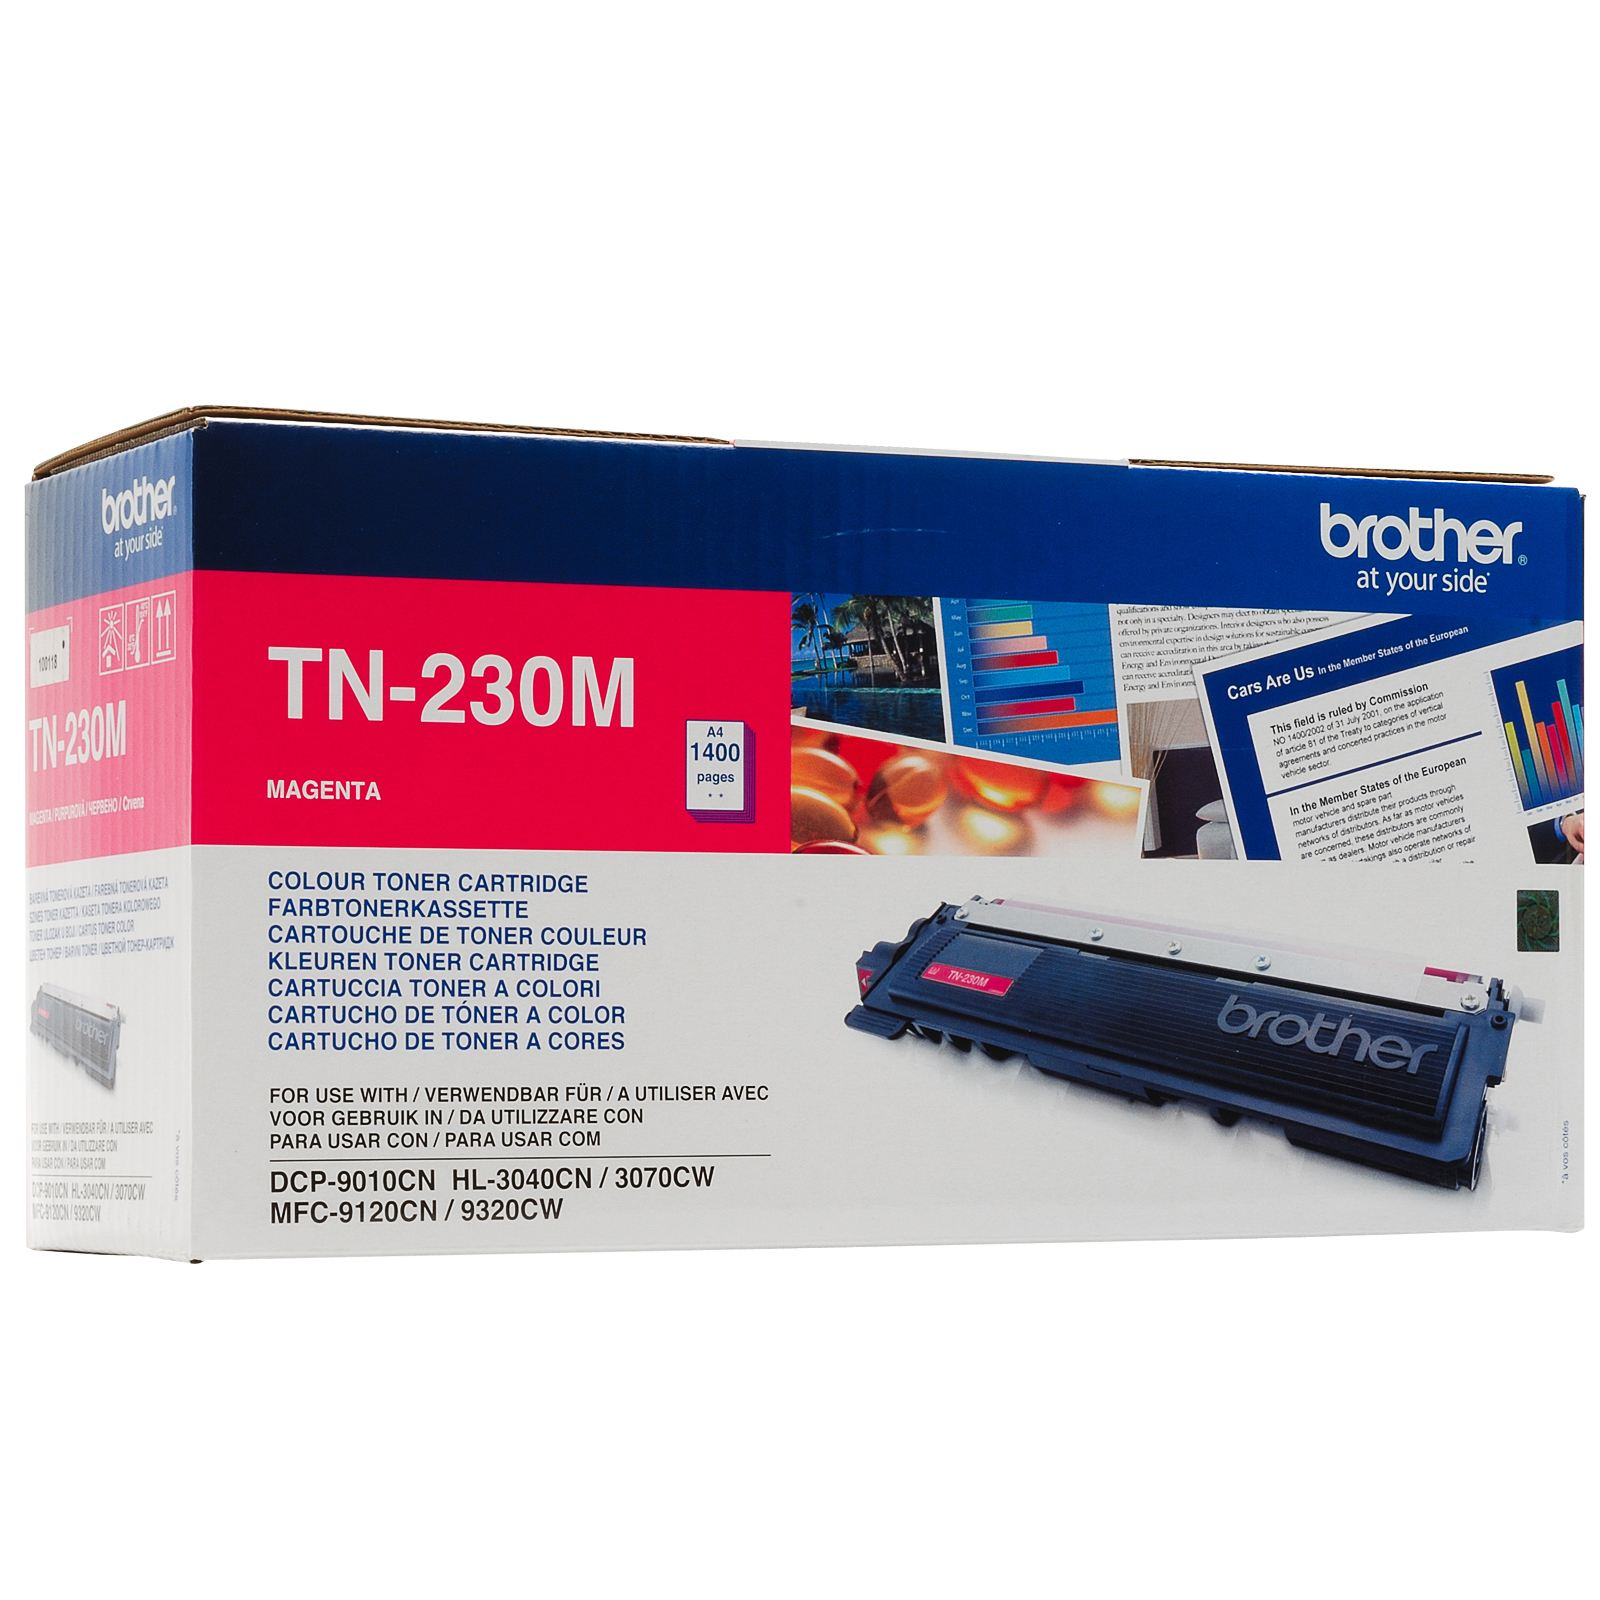 Brother TN-230 Magenta Toner Original 1400 Page Yield